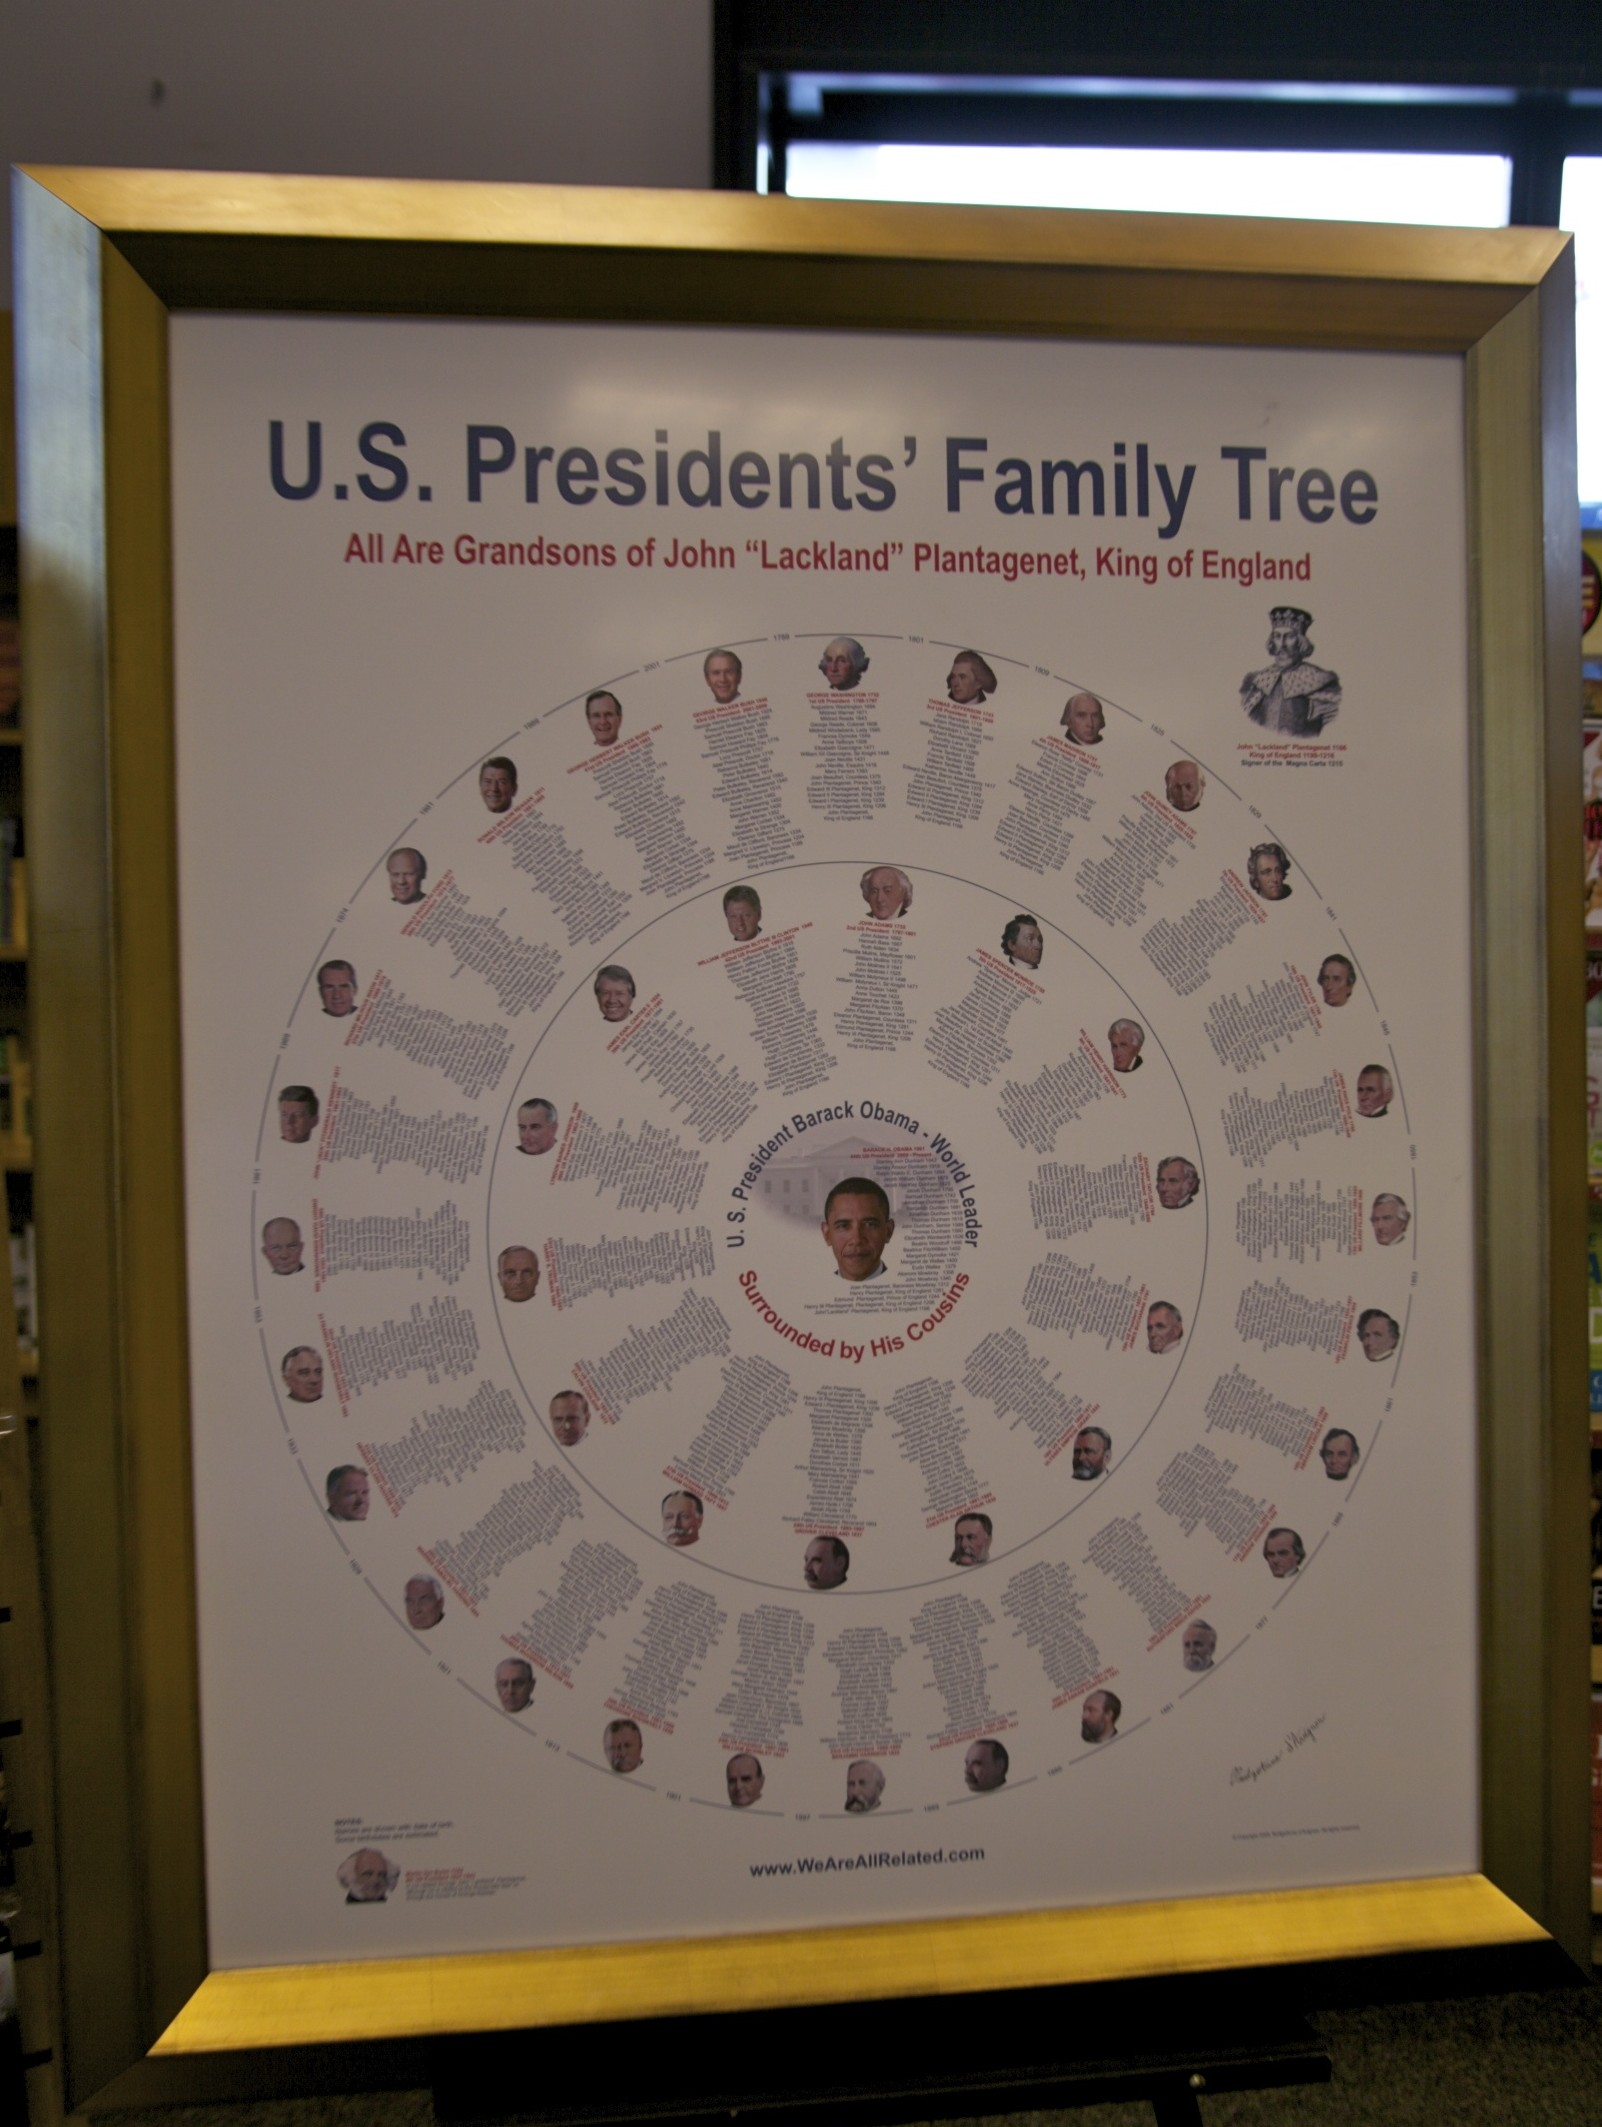 All Presidents Except One Are Directly Descended From